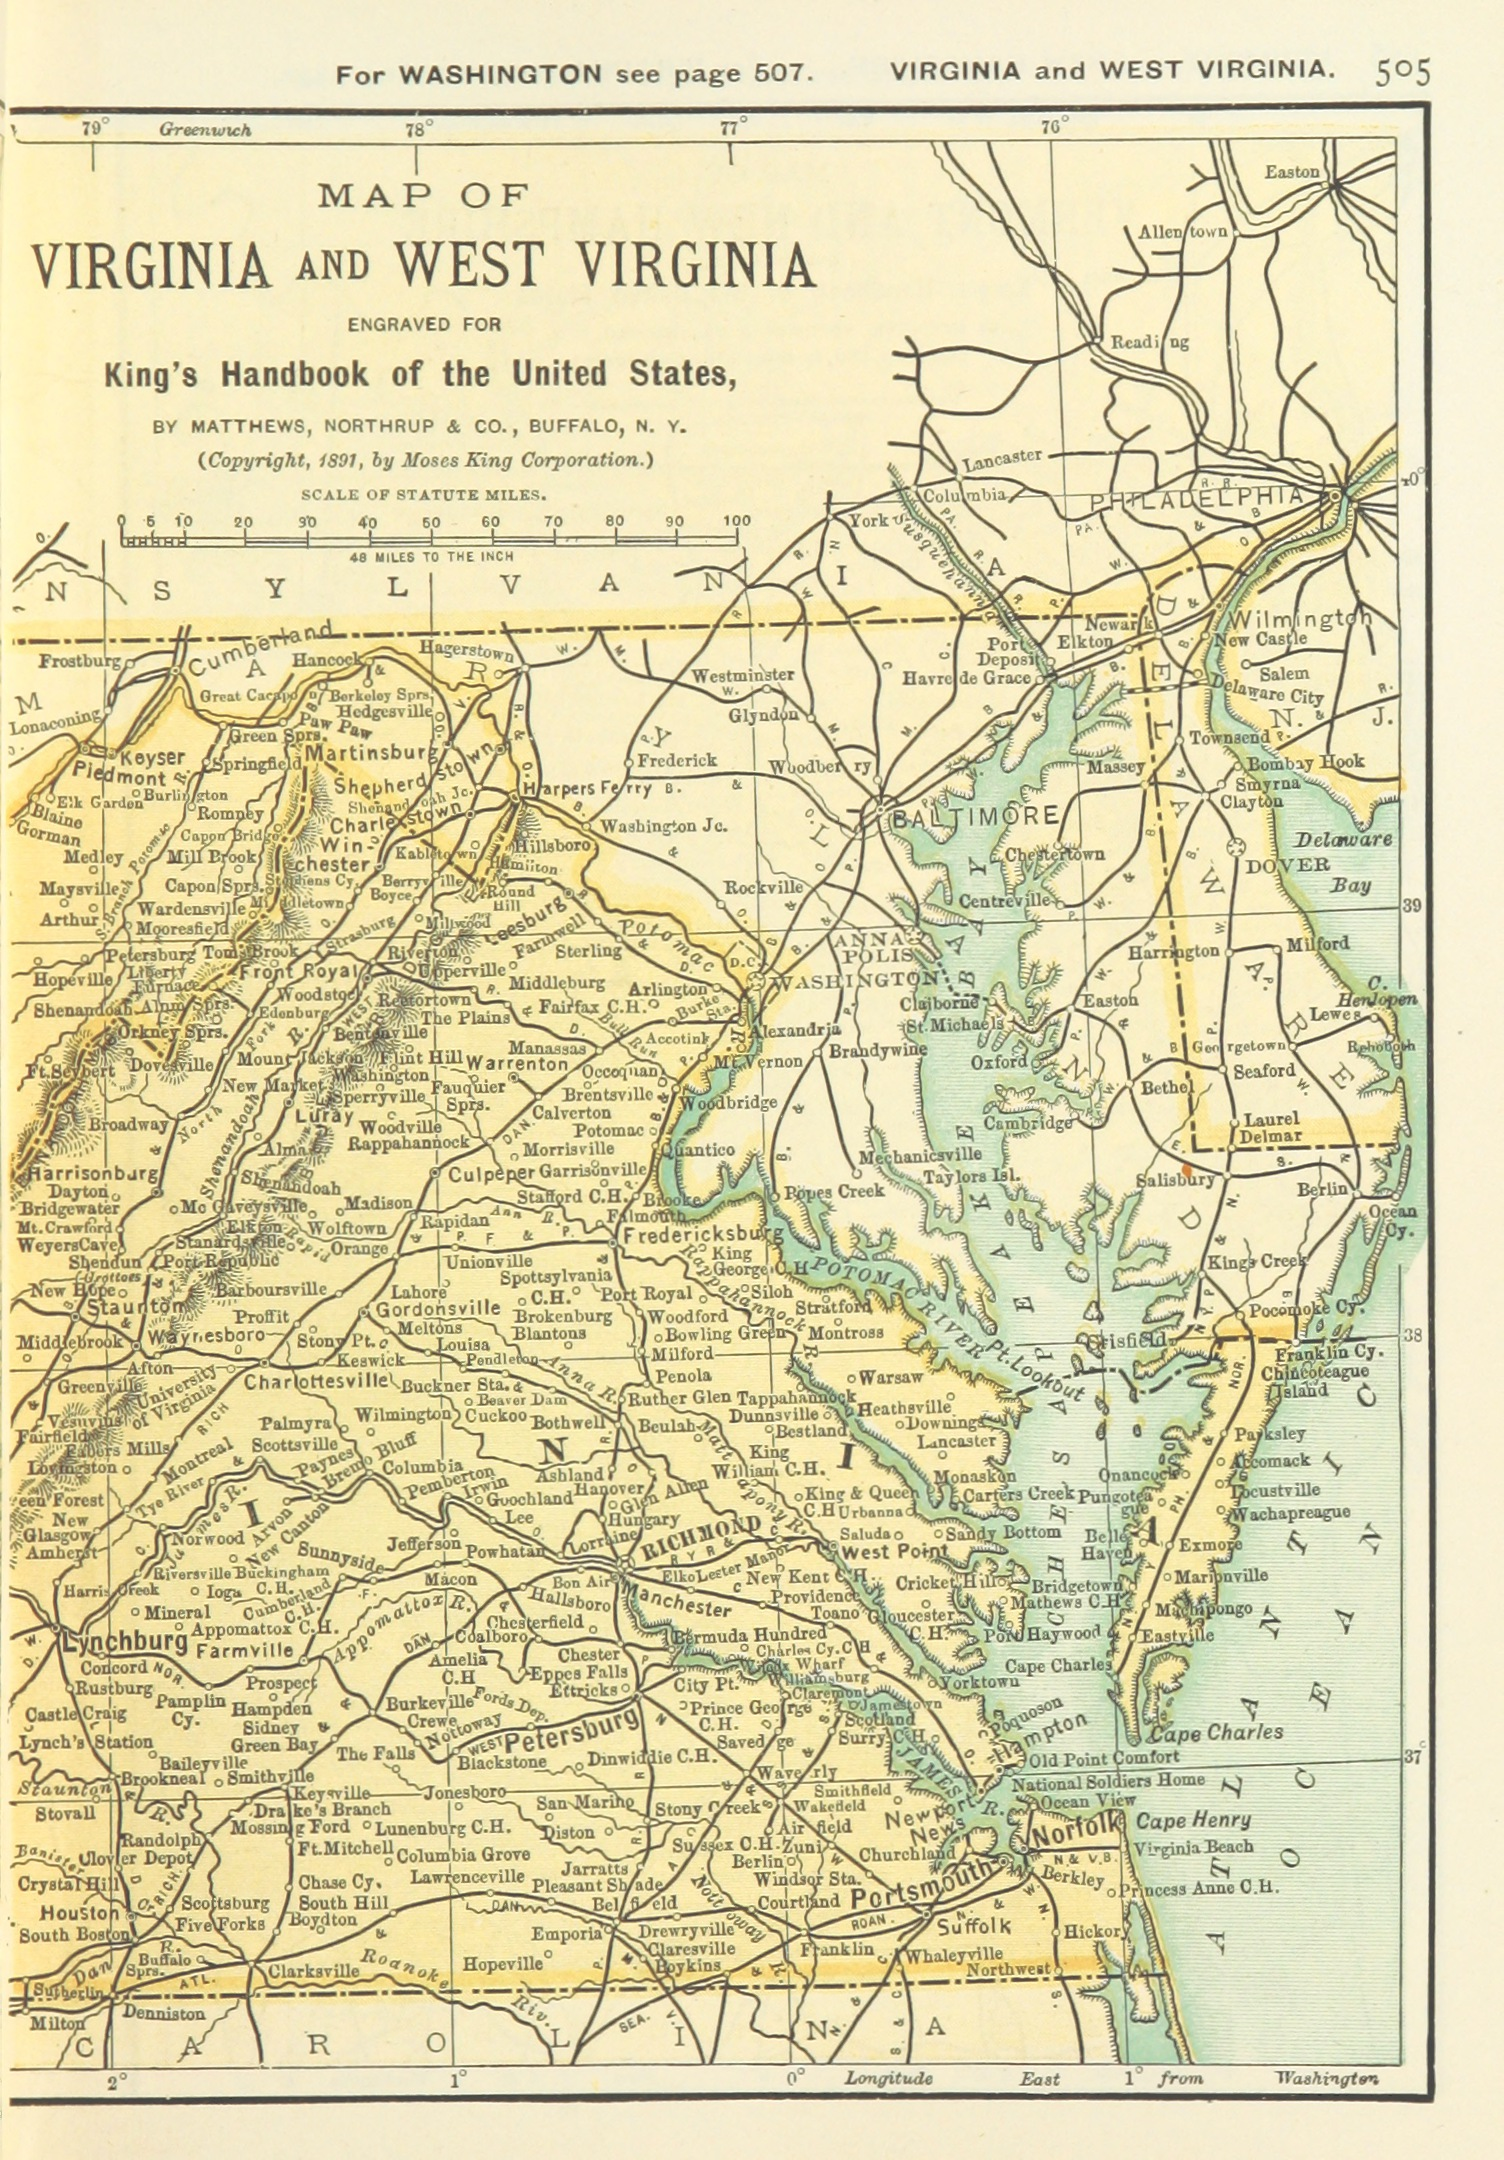 File:US-MAPS(1891) p507 - MAP OF VIRGINIA AND WEST VIRGINIA ...